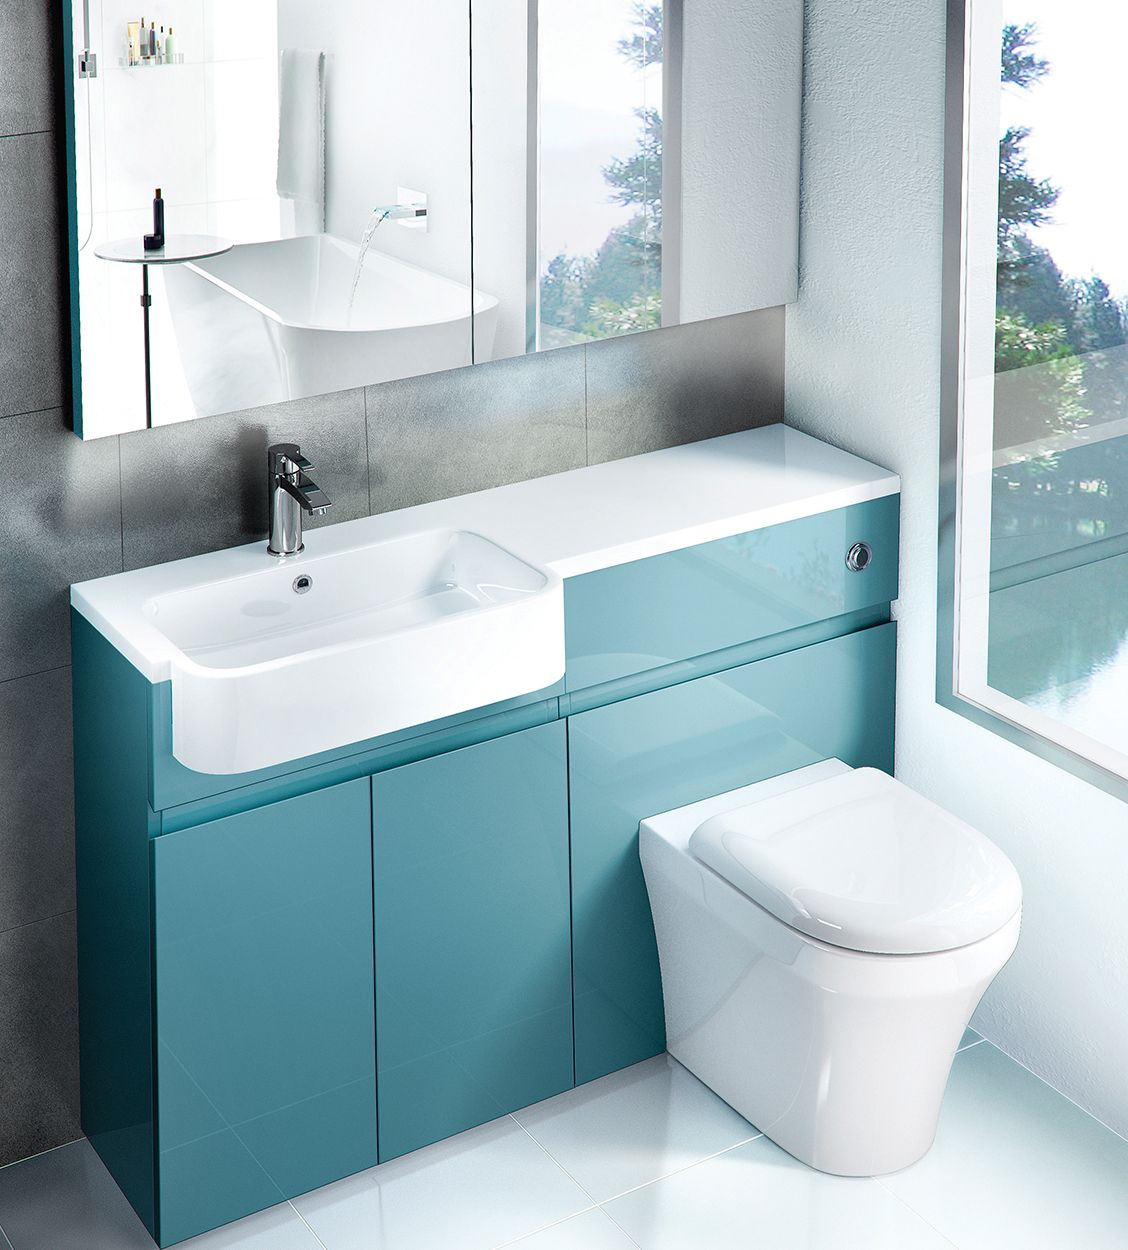 vanity basin units for bathroom. Aqua Cabinets D300 1200mm Combination WC And Basin Unit  from UK Bathroom Solutions